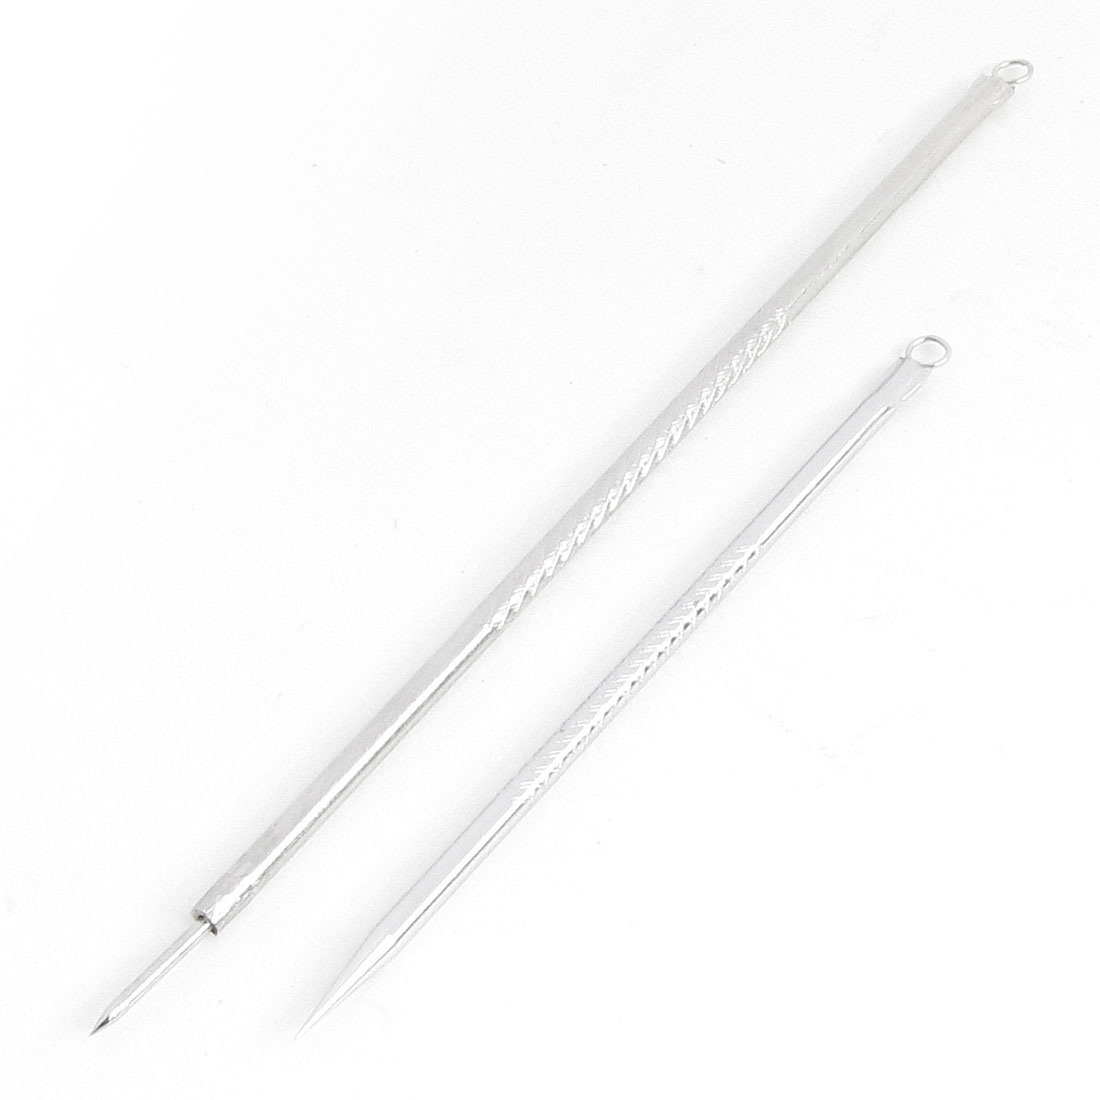 Pair Cosmetic Makeup Tool Metal Pimple Blackhead Remover Acne Needles